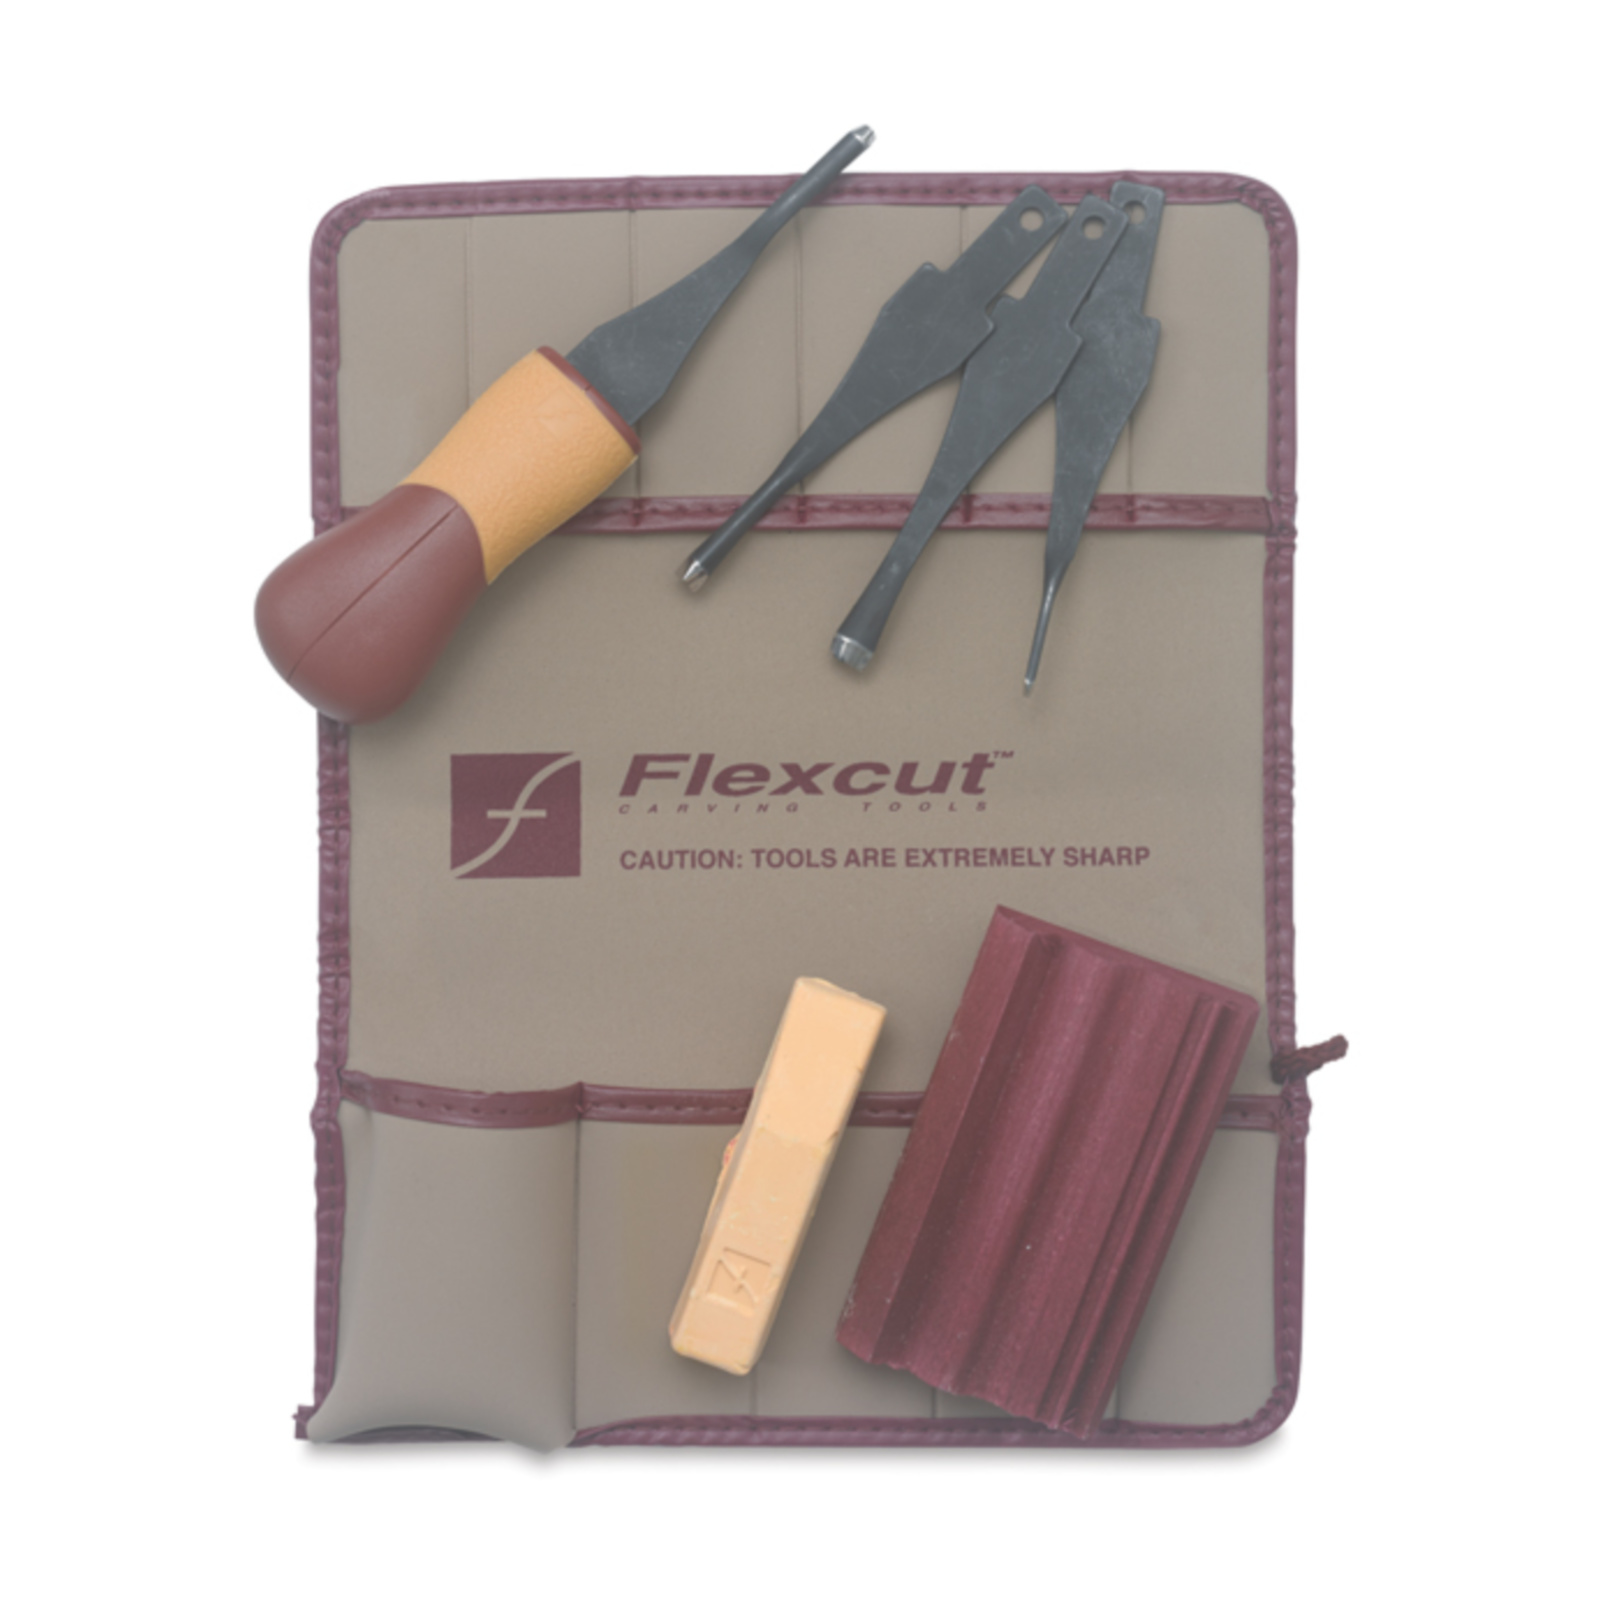 Flexcut Lino & Relief Printmaking Set - There are so many excellent cutters out there. I love this set because the blades are so quick and easy to swap out, and this is very affordable compared to other sets of this quality. This also comes with supplies to sharpen your blades, so you can always safely cut through the Golden-Cut Linoleum with ease.